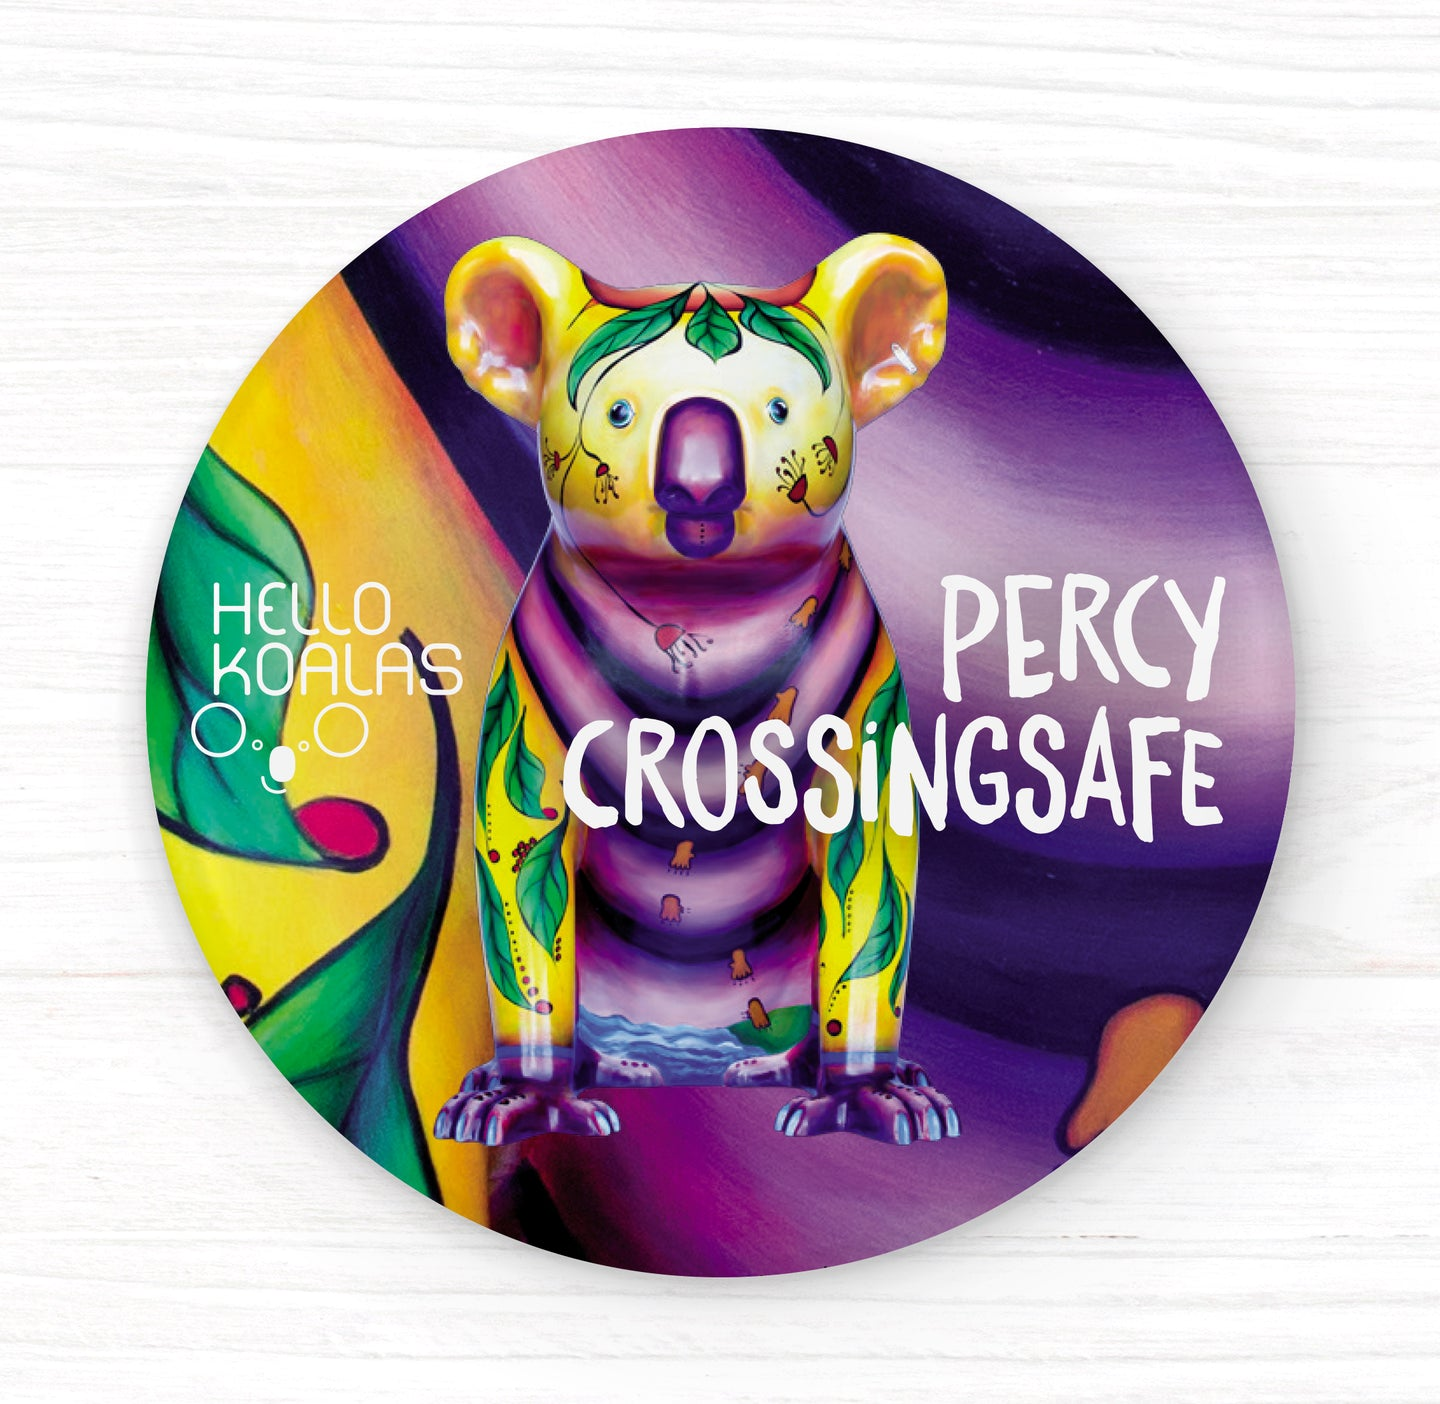 Hello Koalas Percy Crossingsafe Badge